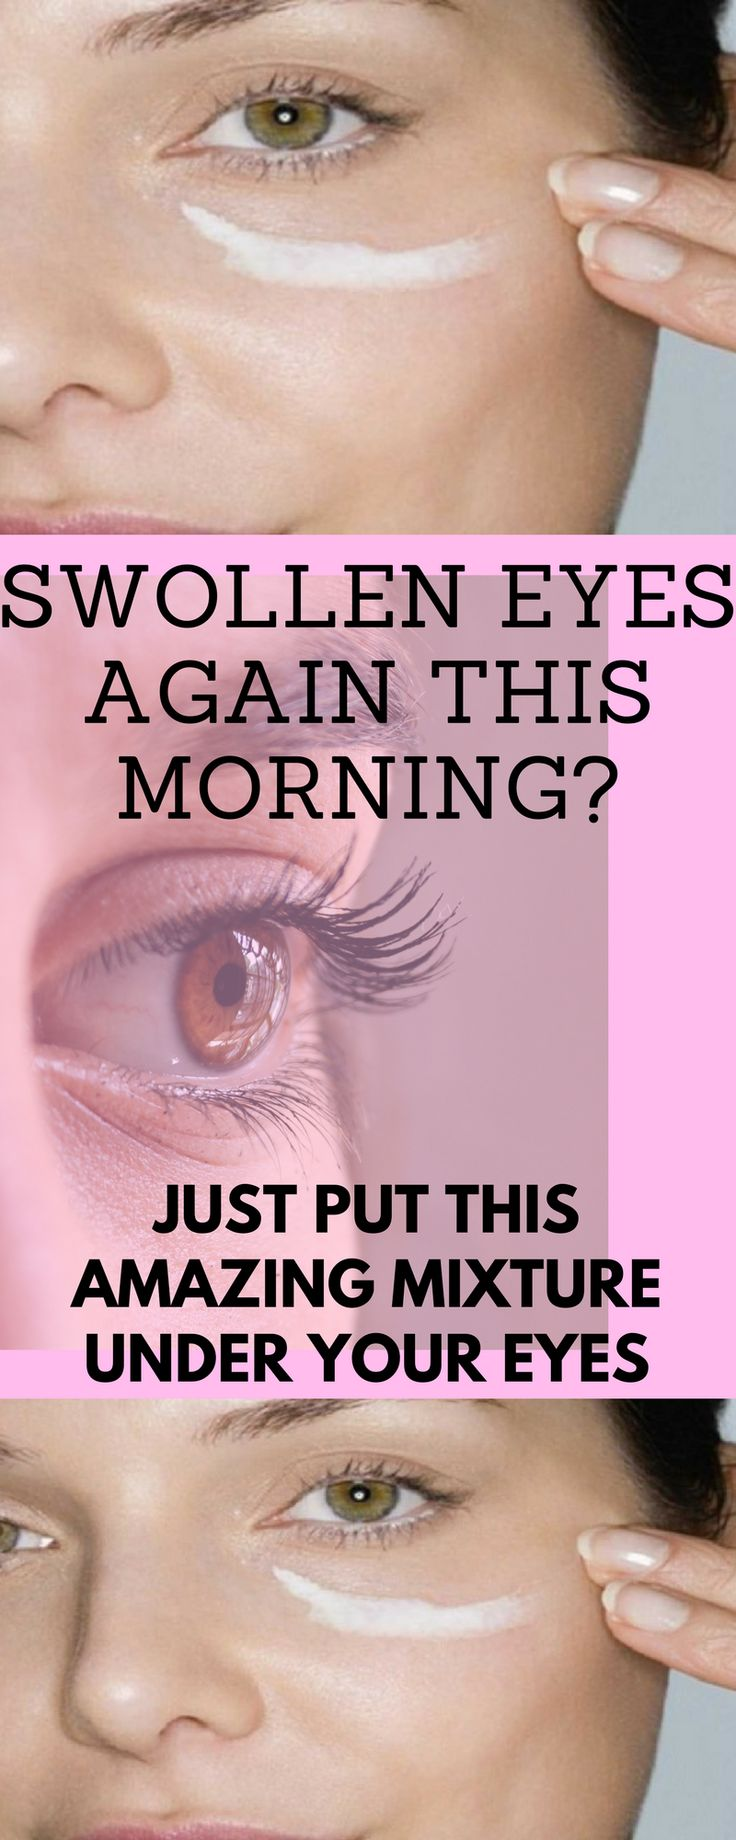 Put This Amazing Mixture Under Your Eyes